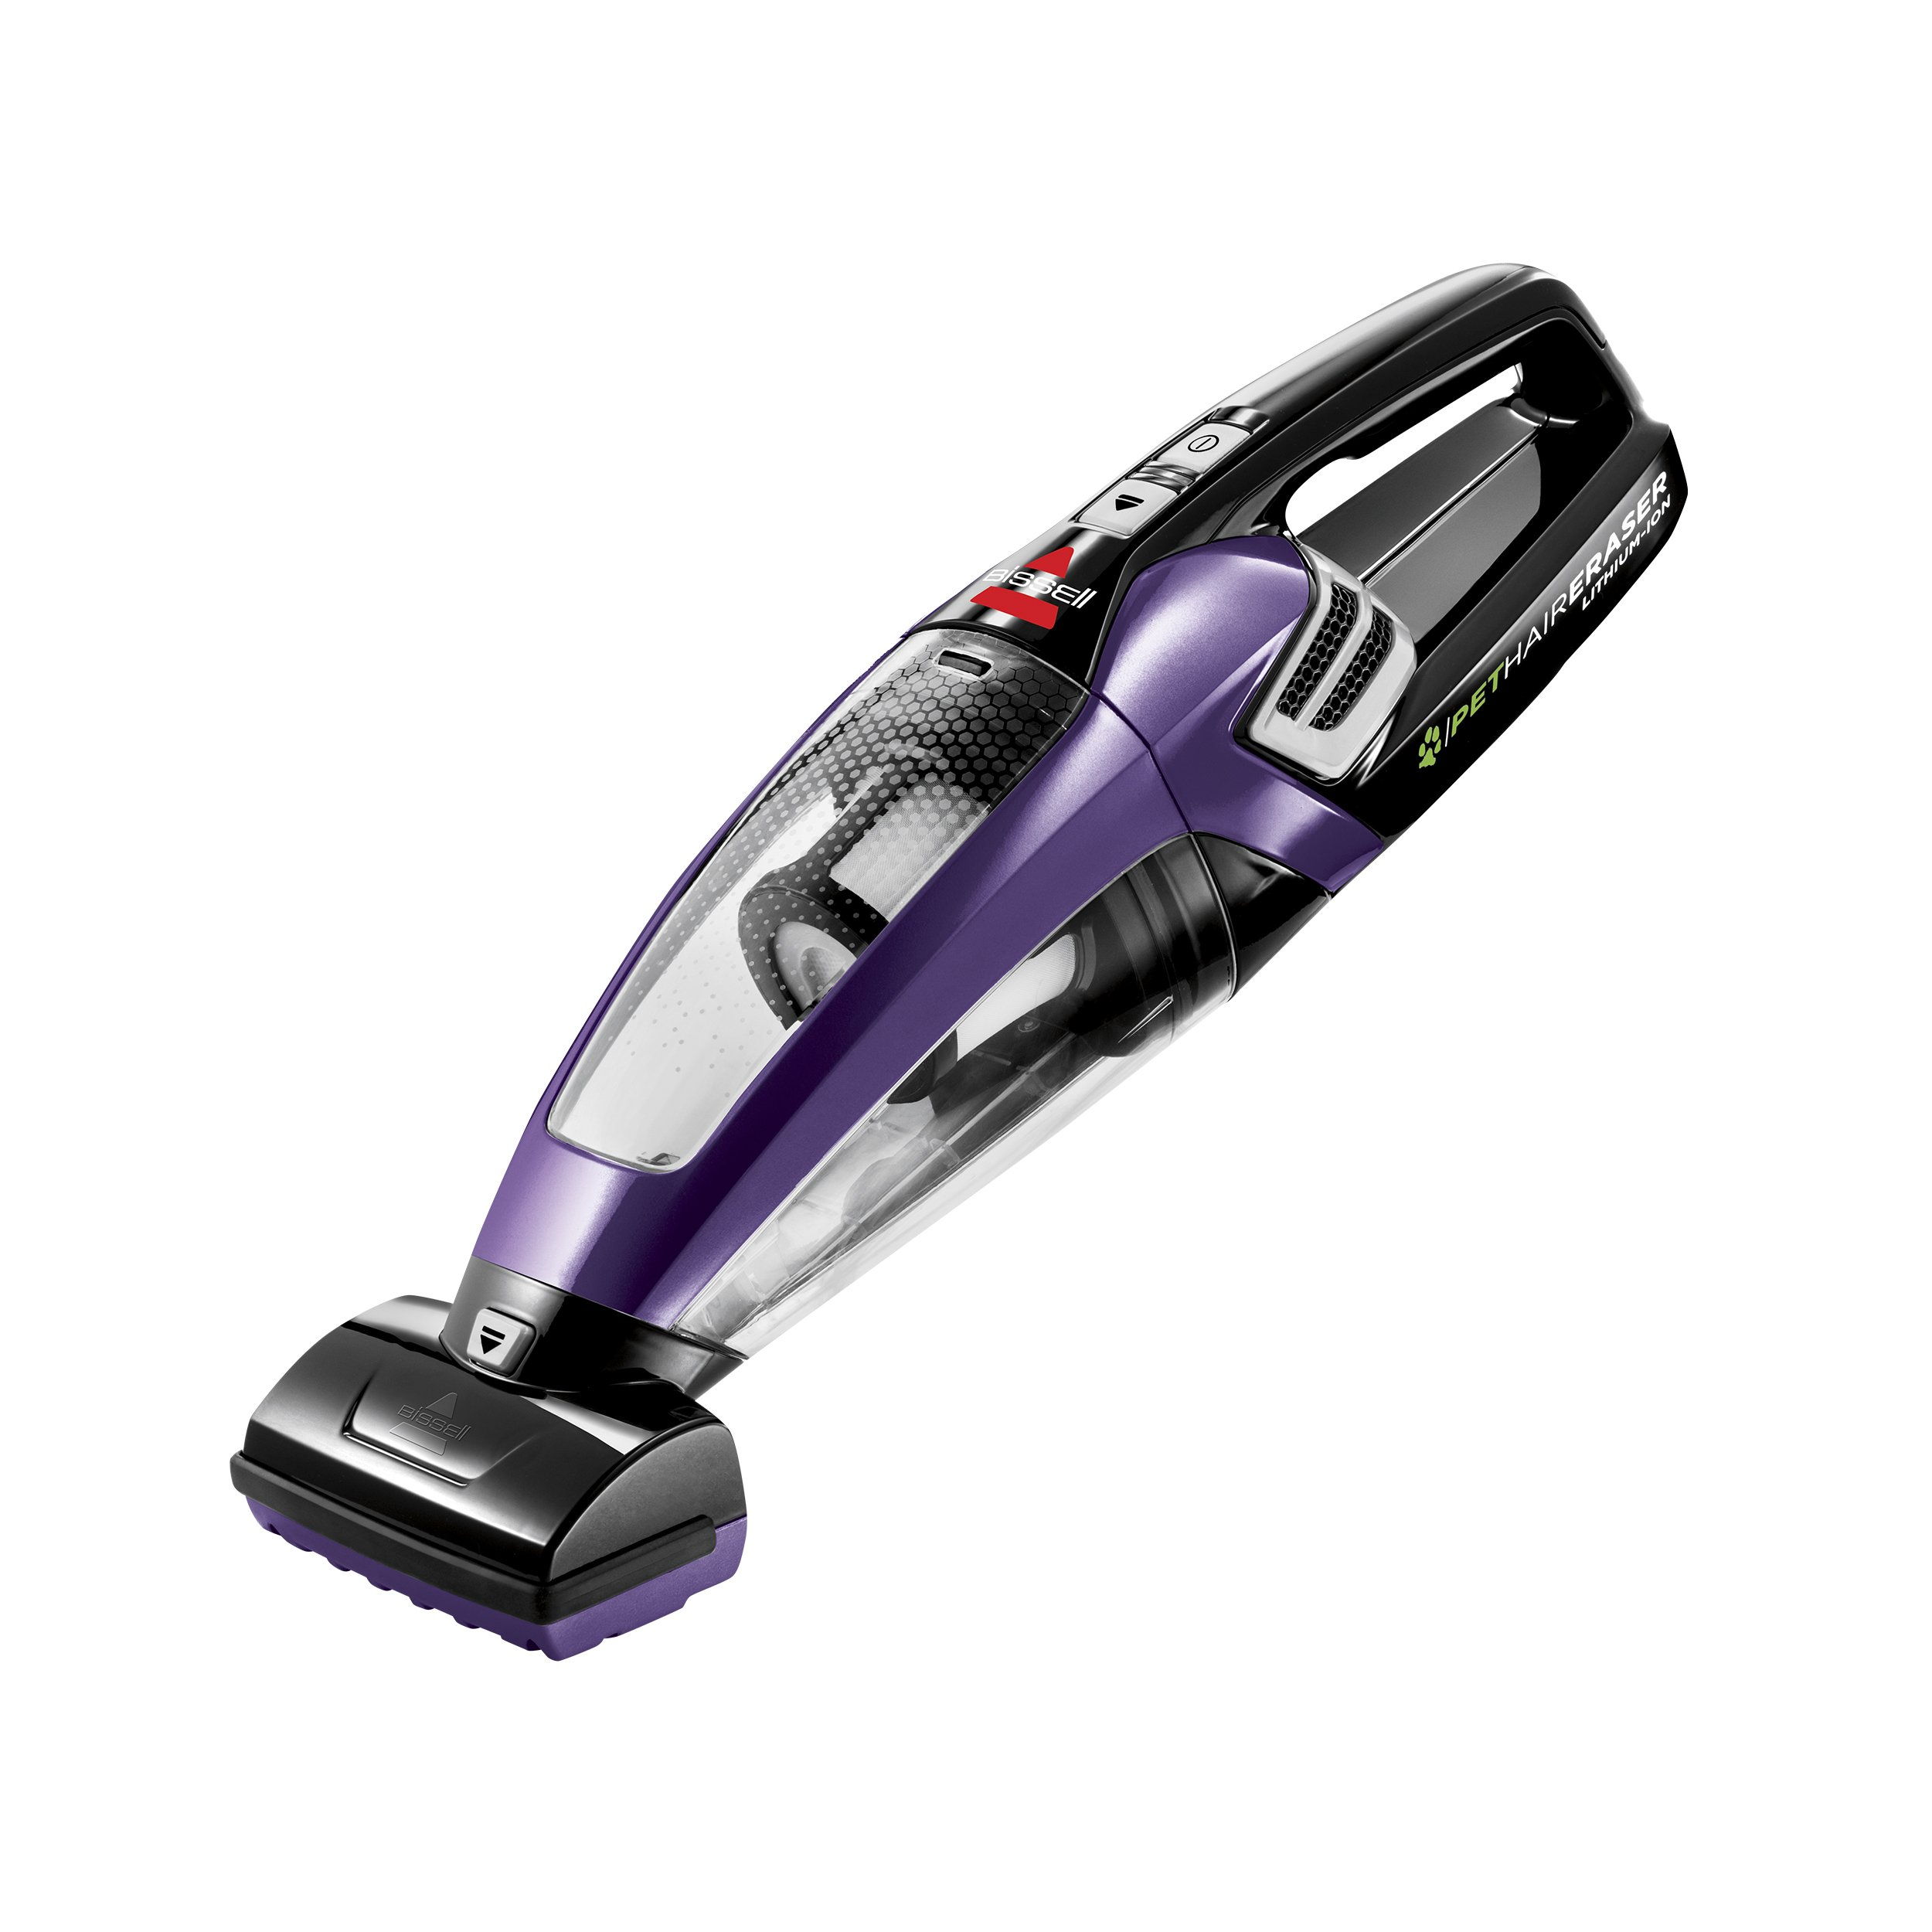 BISSELL Pet Hair Eraser Lithium Ion Hand Handheld Cordless Vacuum, Purple by Bissell